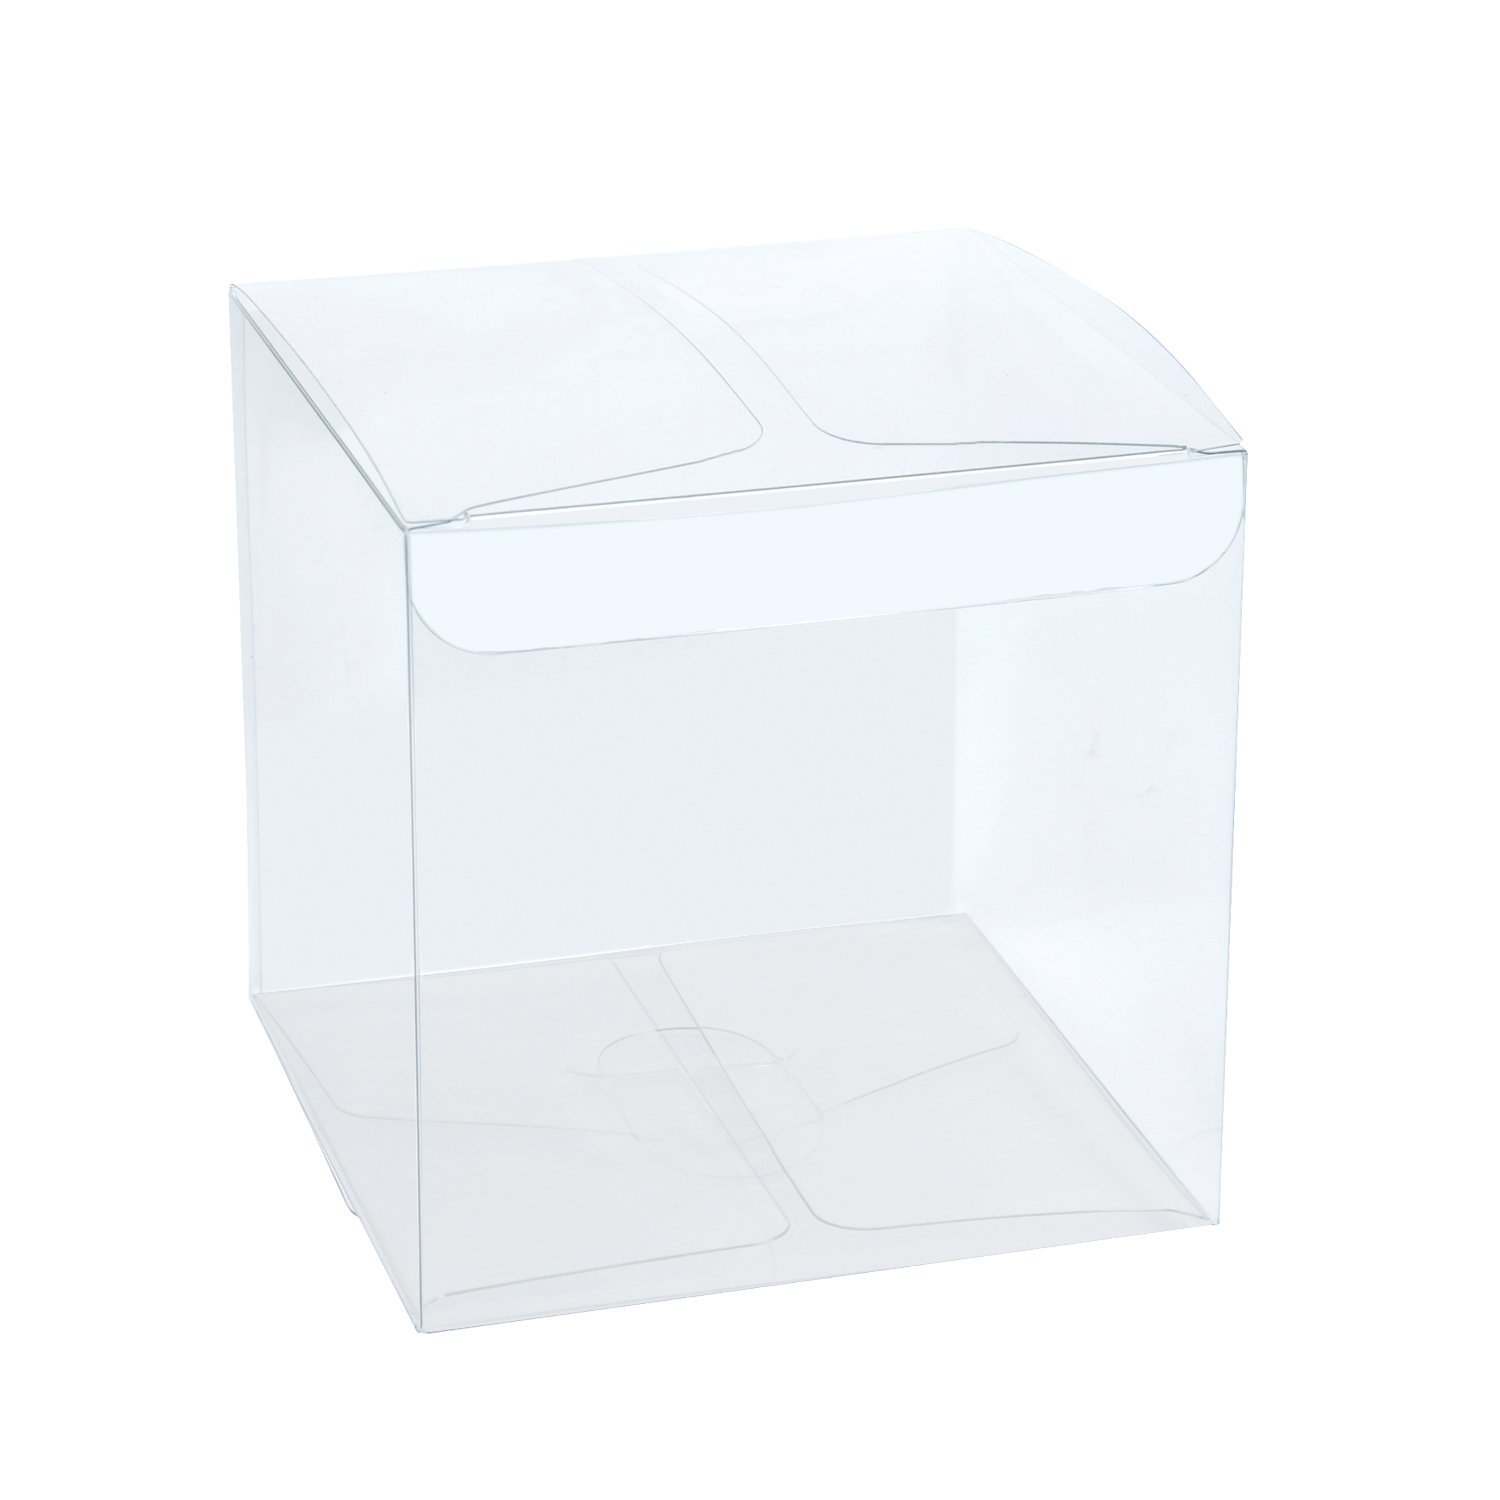 LaRibbons 30Pcs PET Clear Box, Transparent Boxes, Candy Box, Clear Gift Boxes for Wedding, Party and Baby Shower Favors, 3'' L x 3'' W x 3'' H by LaRibbons